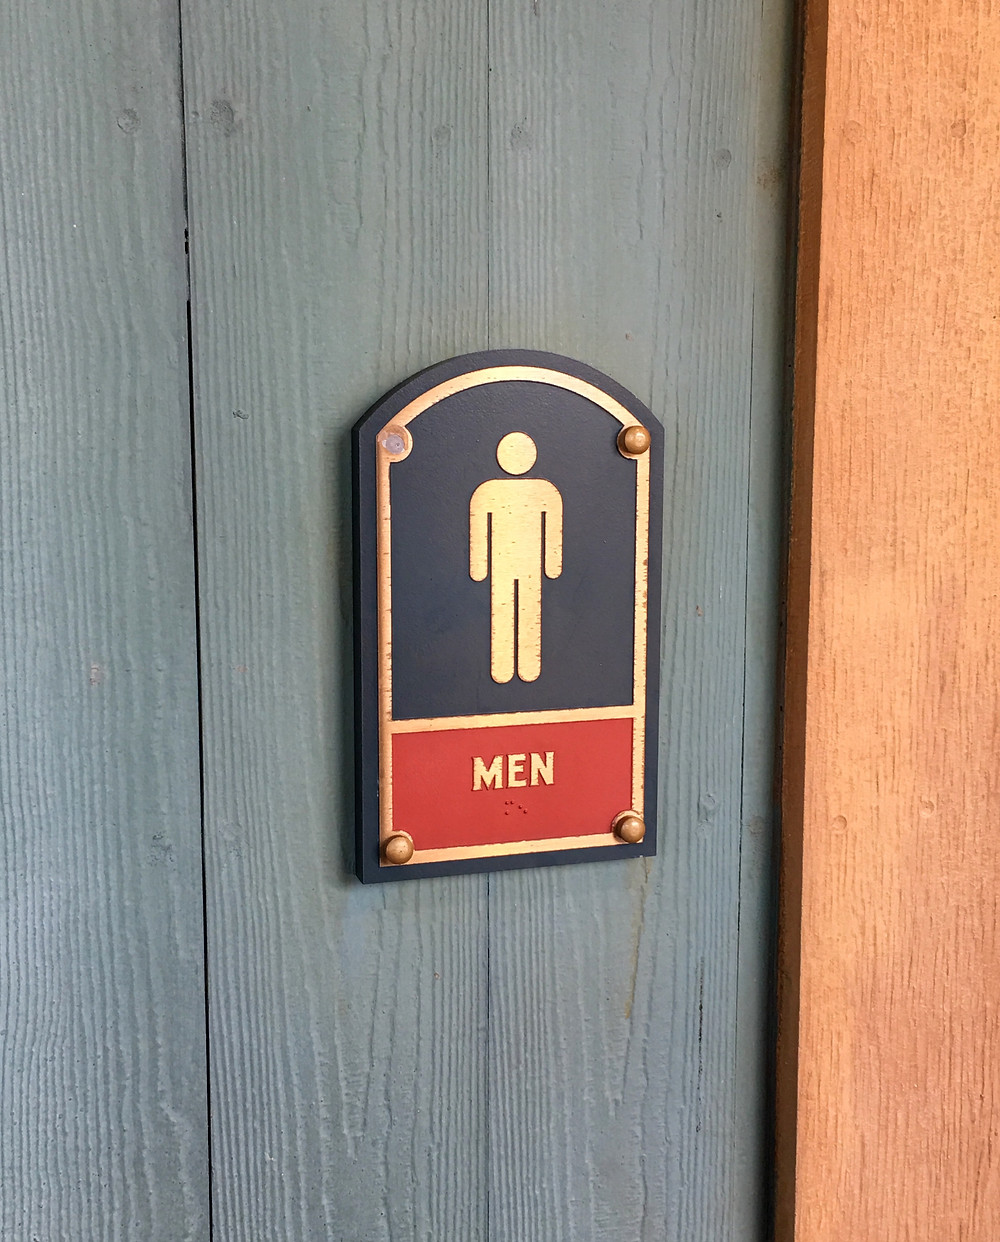 Men's Room Sign, Storybook Circus Restroom, Magic Kingdom